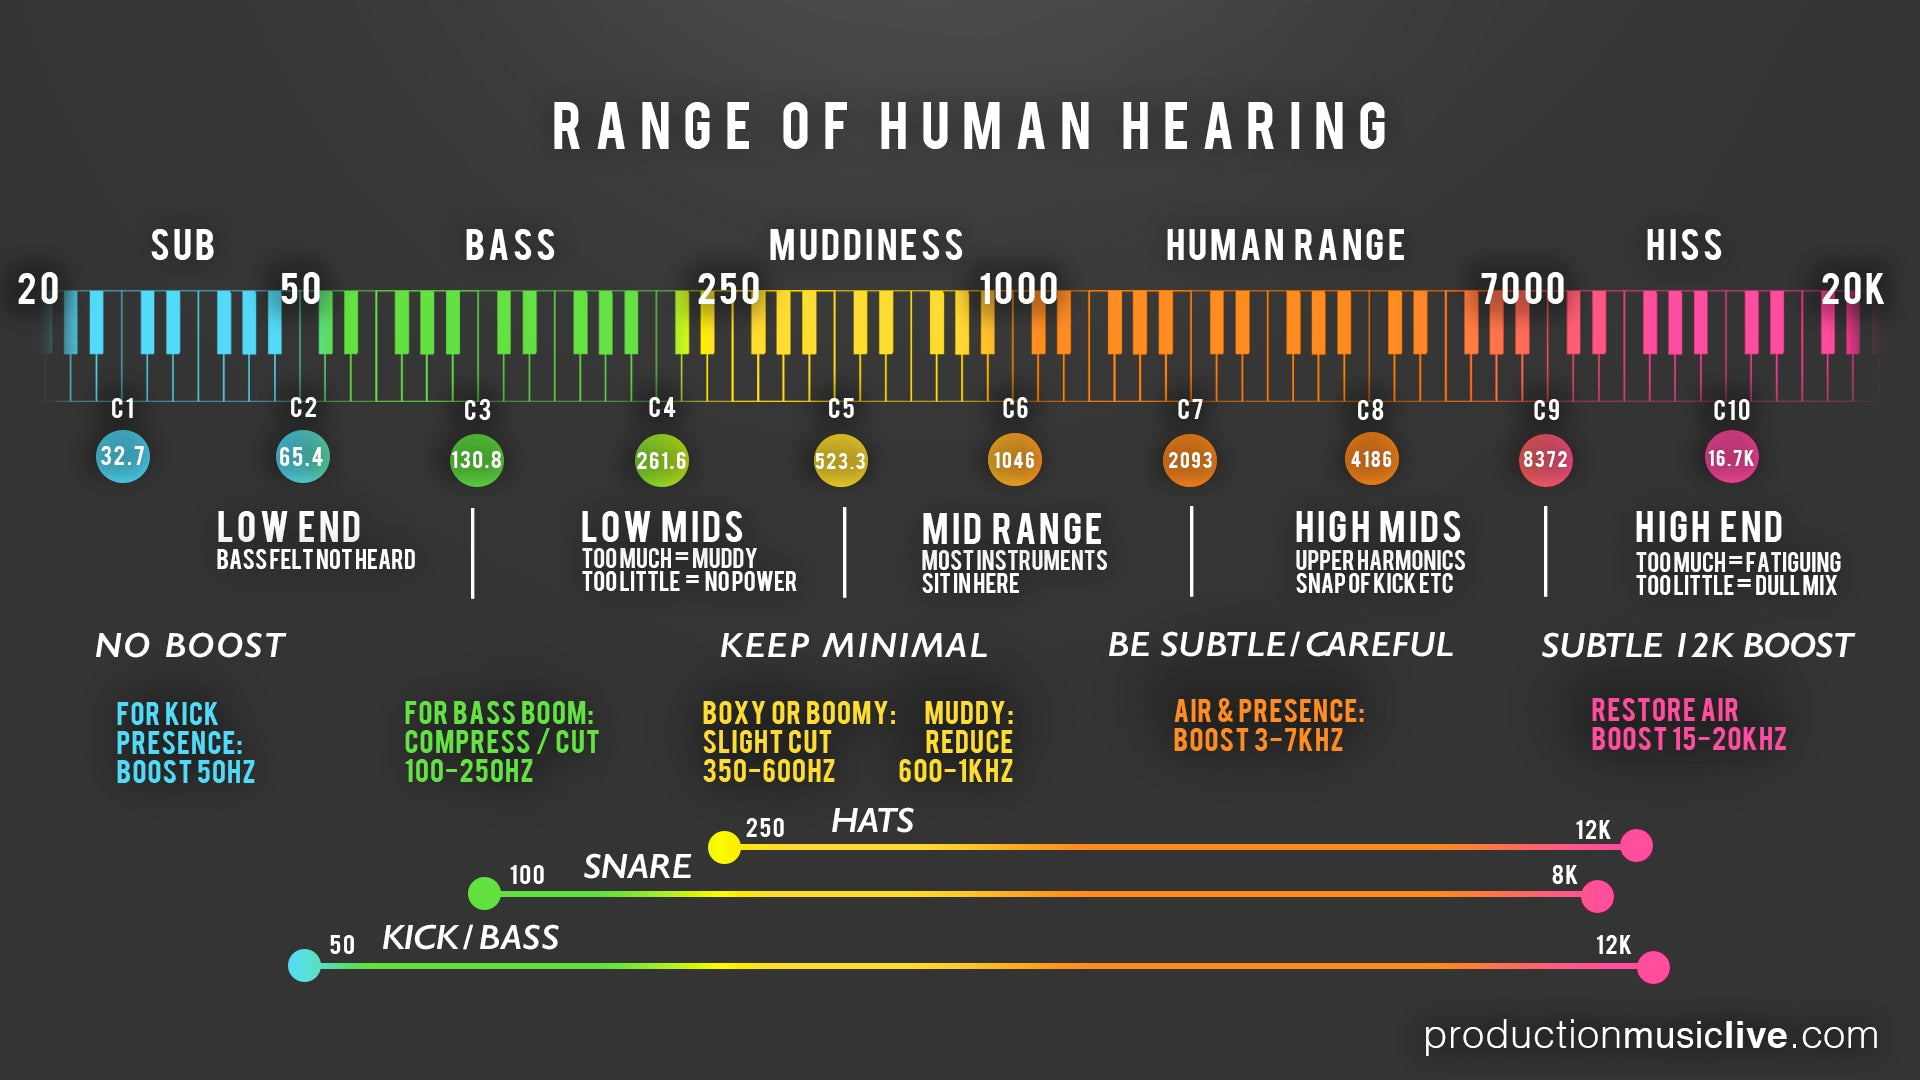 Infographic showing what is where in the Audio Spectrum